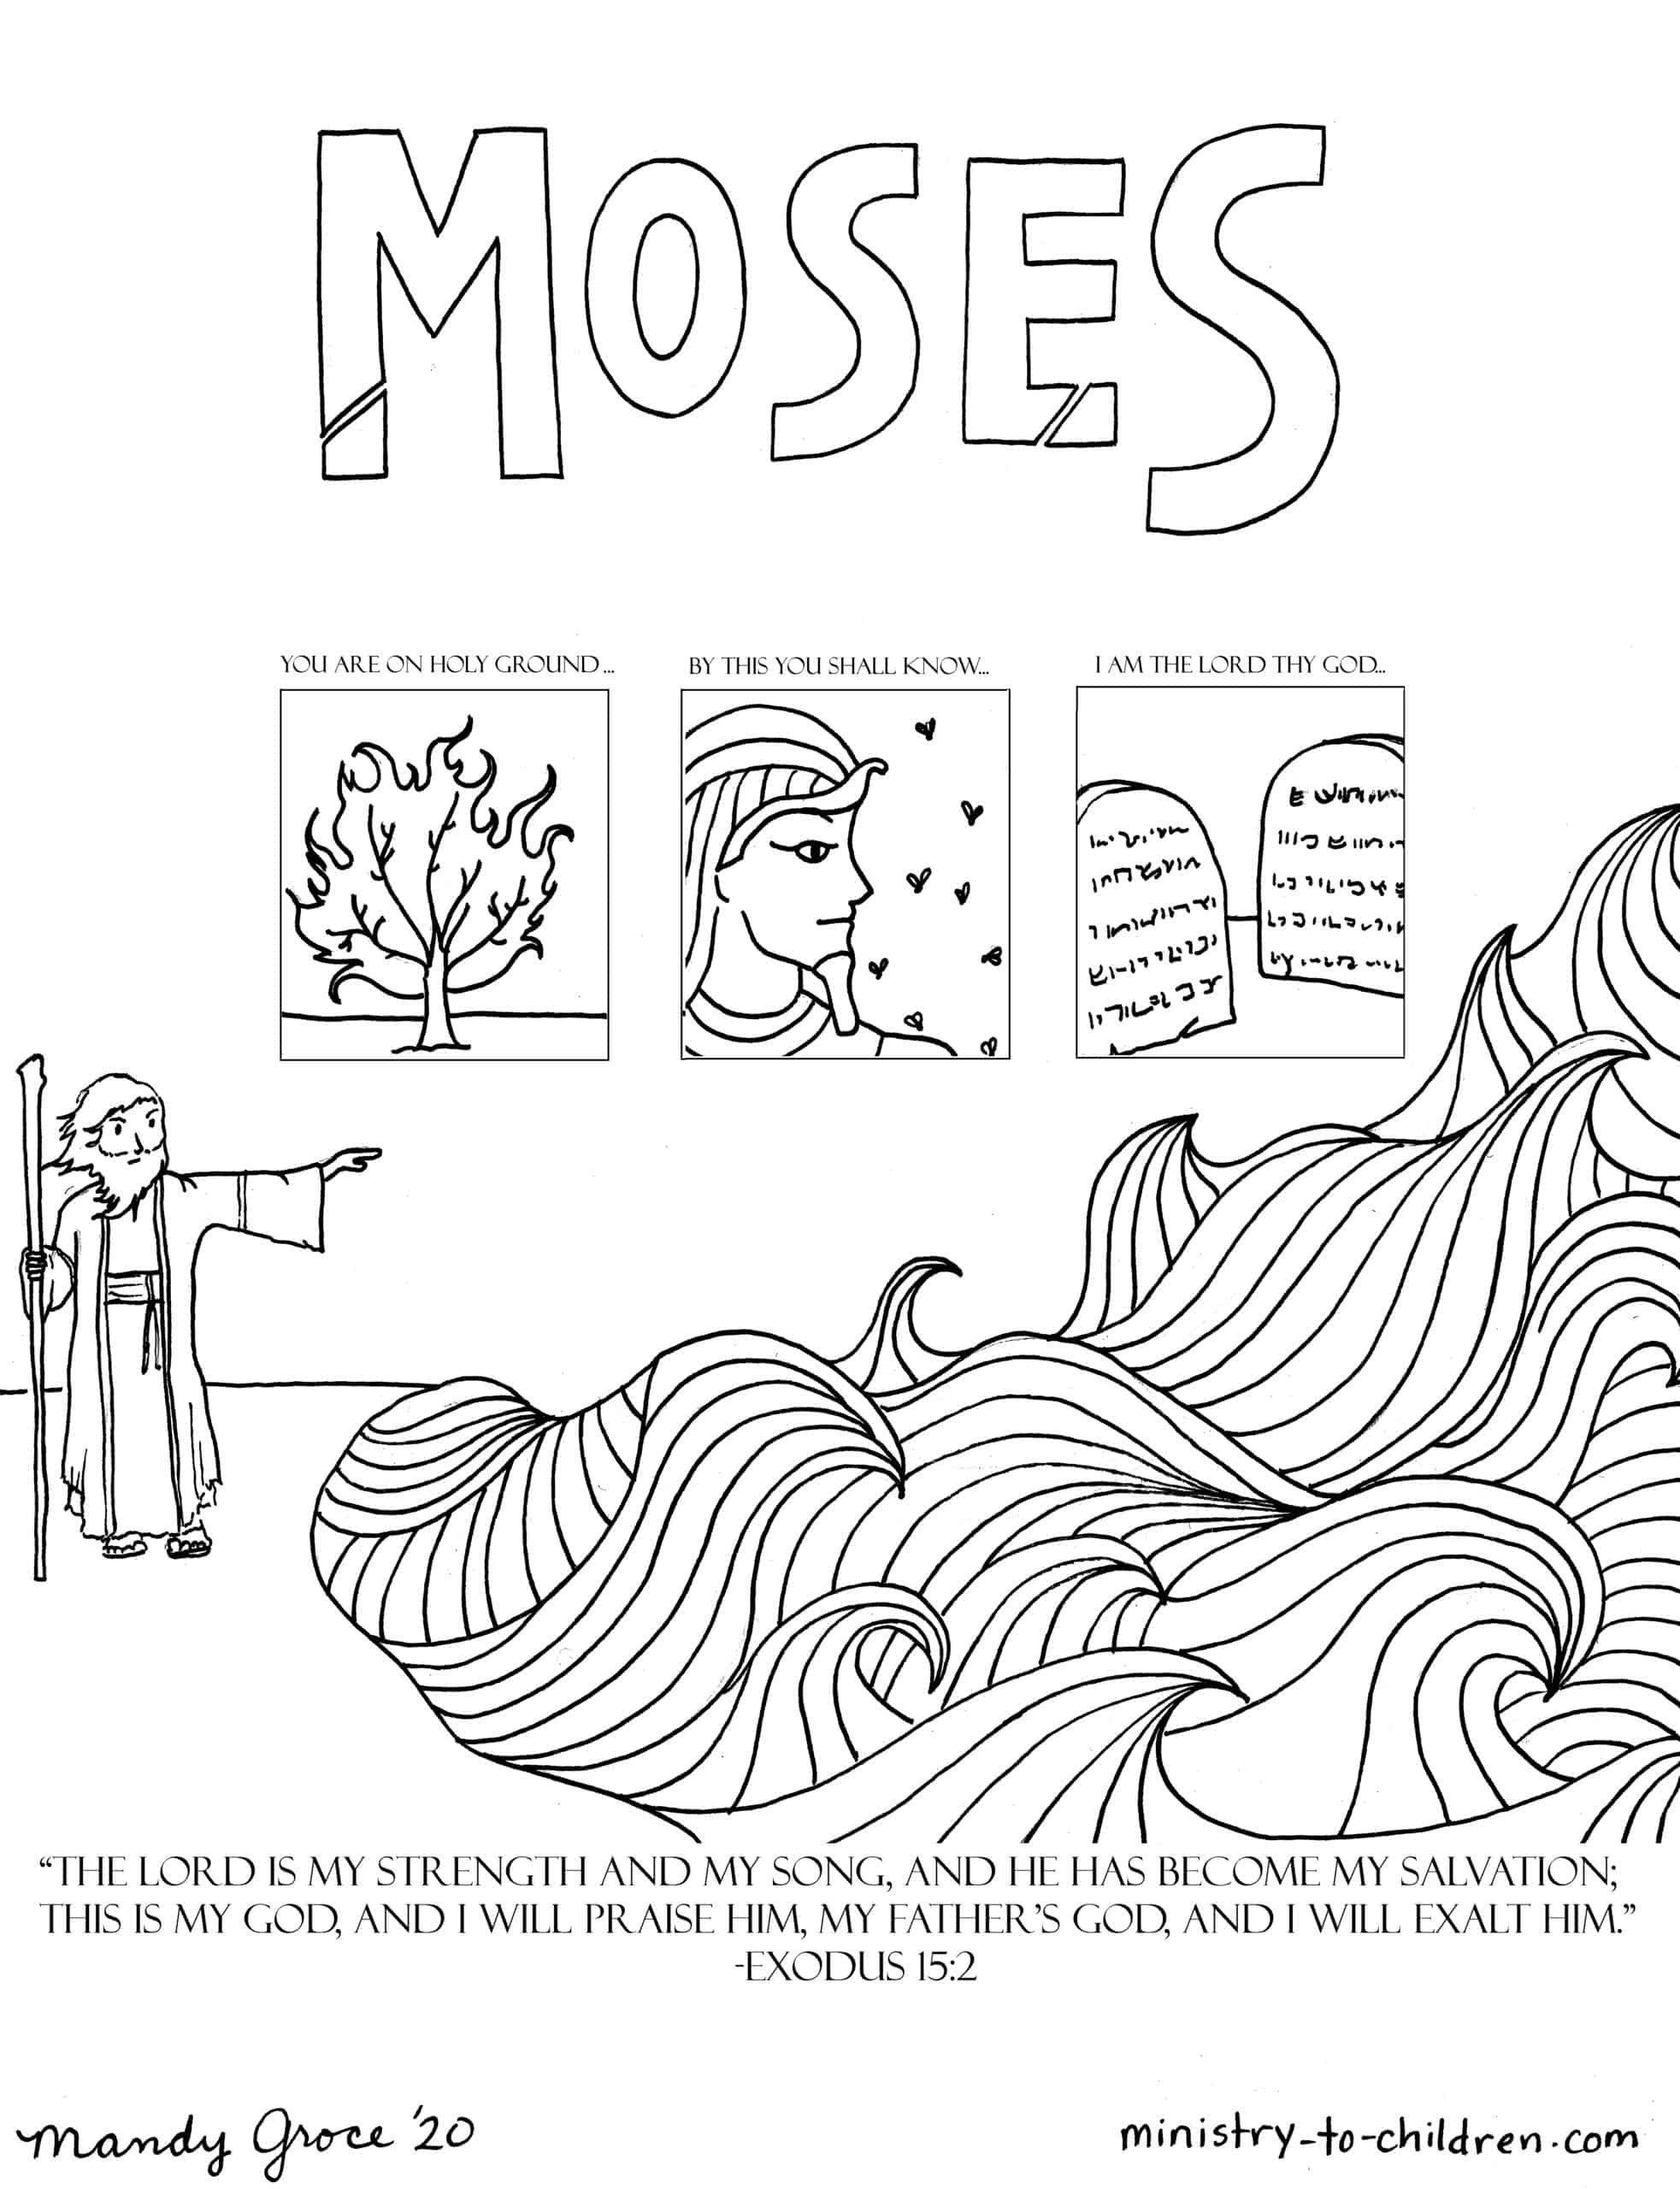 Moses Coloring Pages For Sunday School Moses Coloring Page